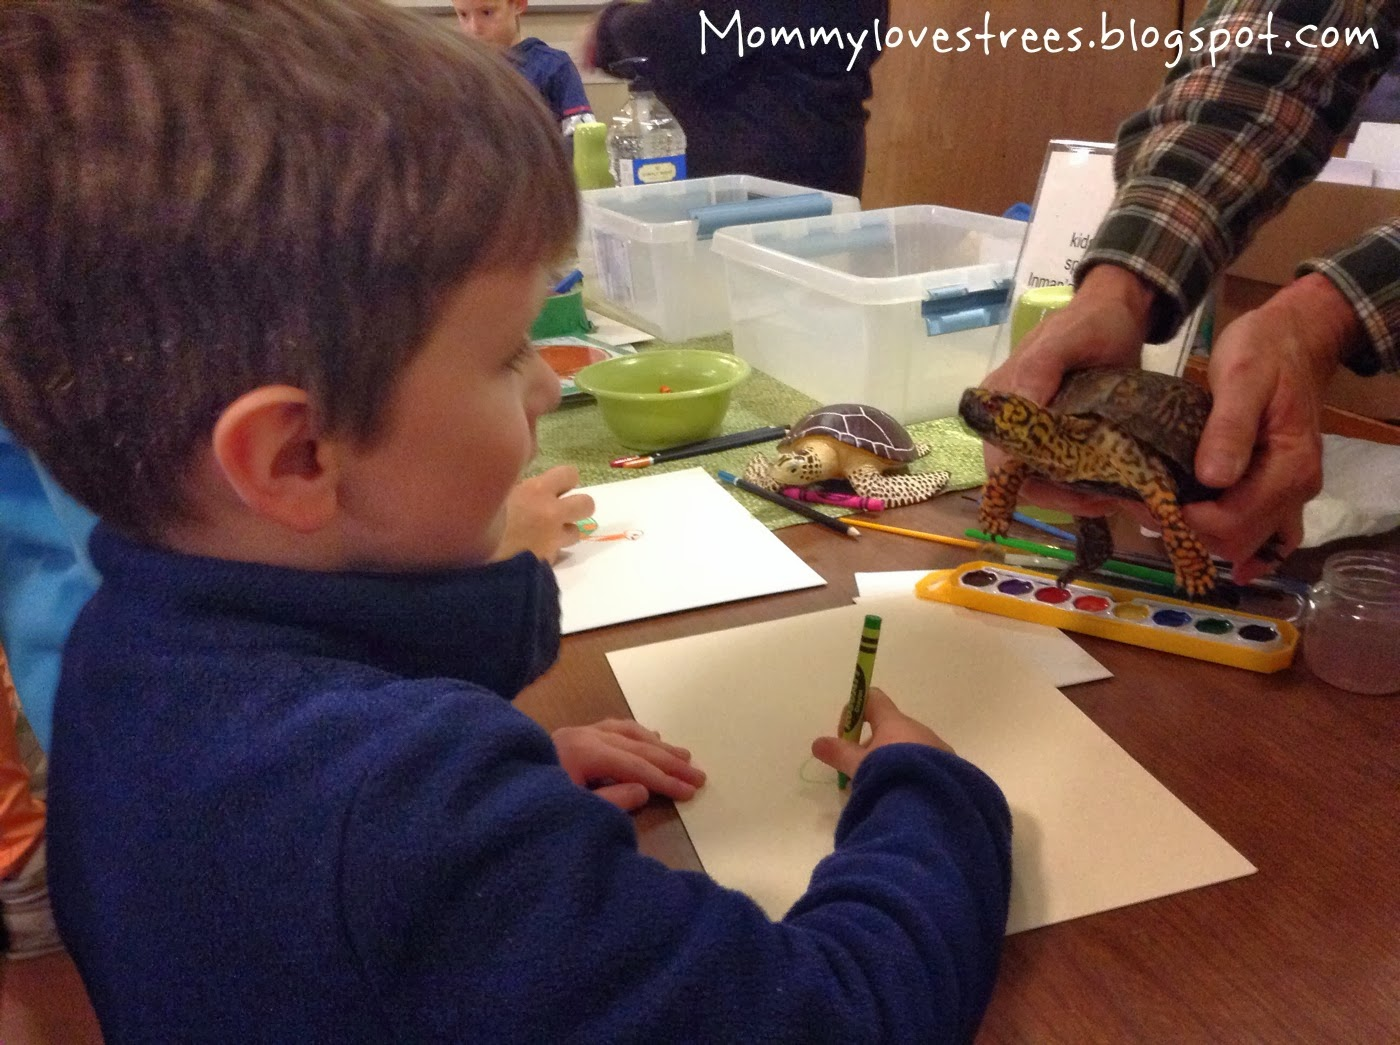 Benefits of combining art & nature|Mommy Loves Trees